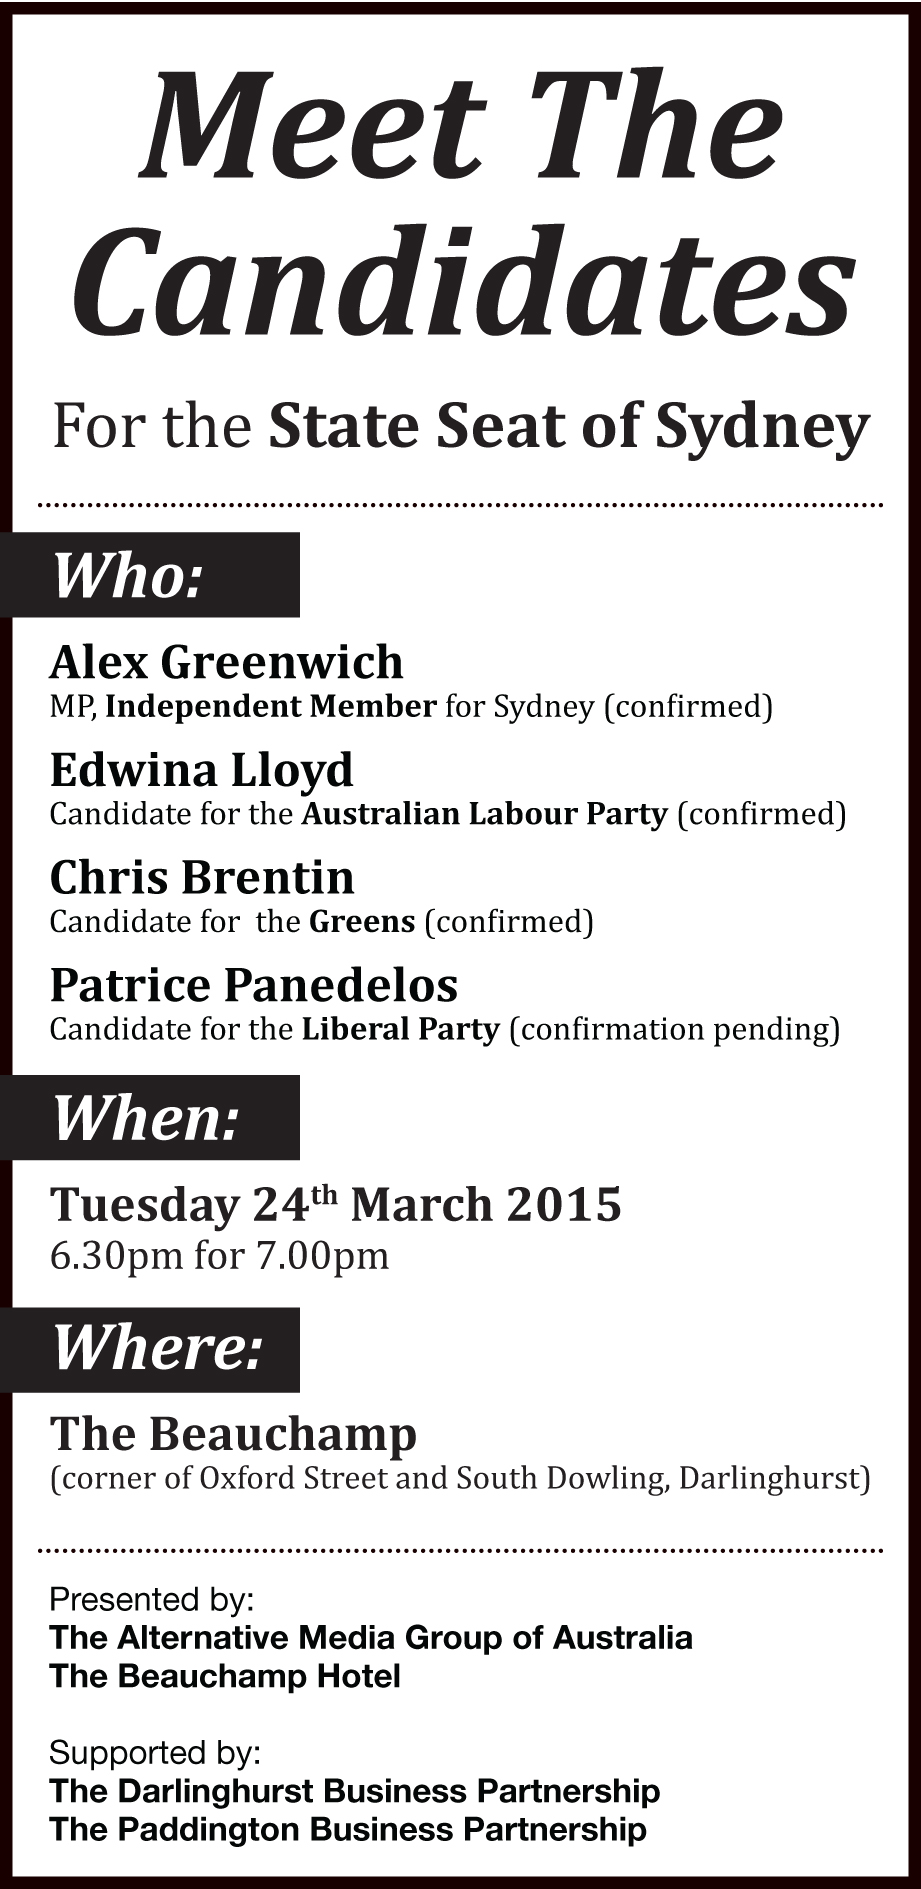 Meet-The-Candidates-2015-NSW